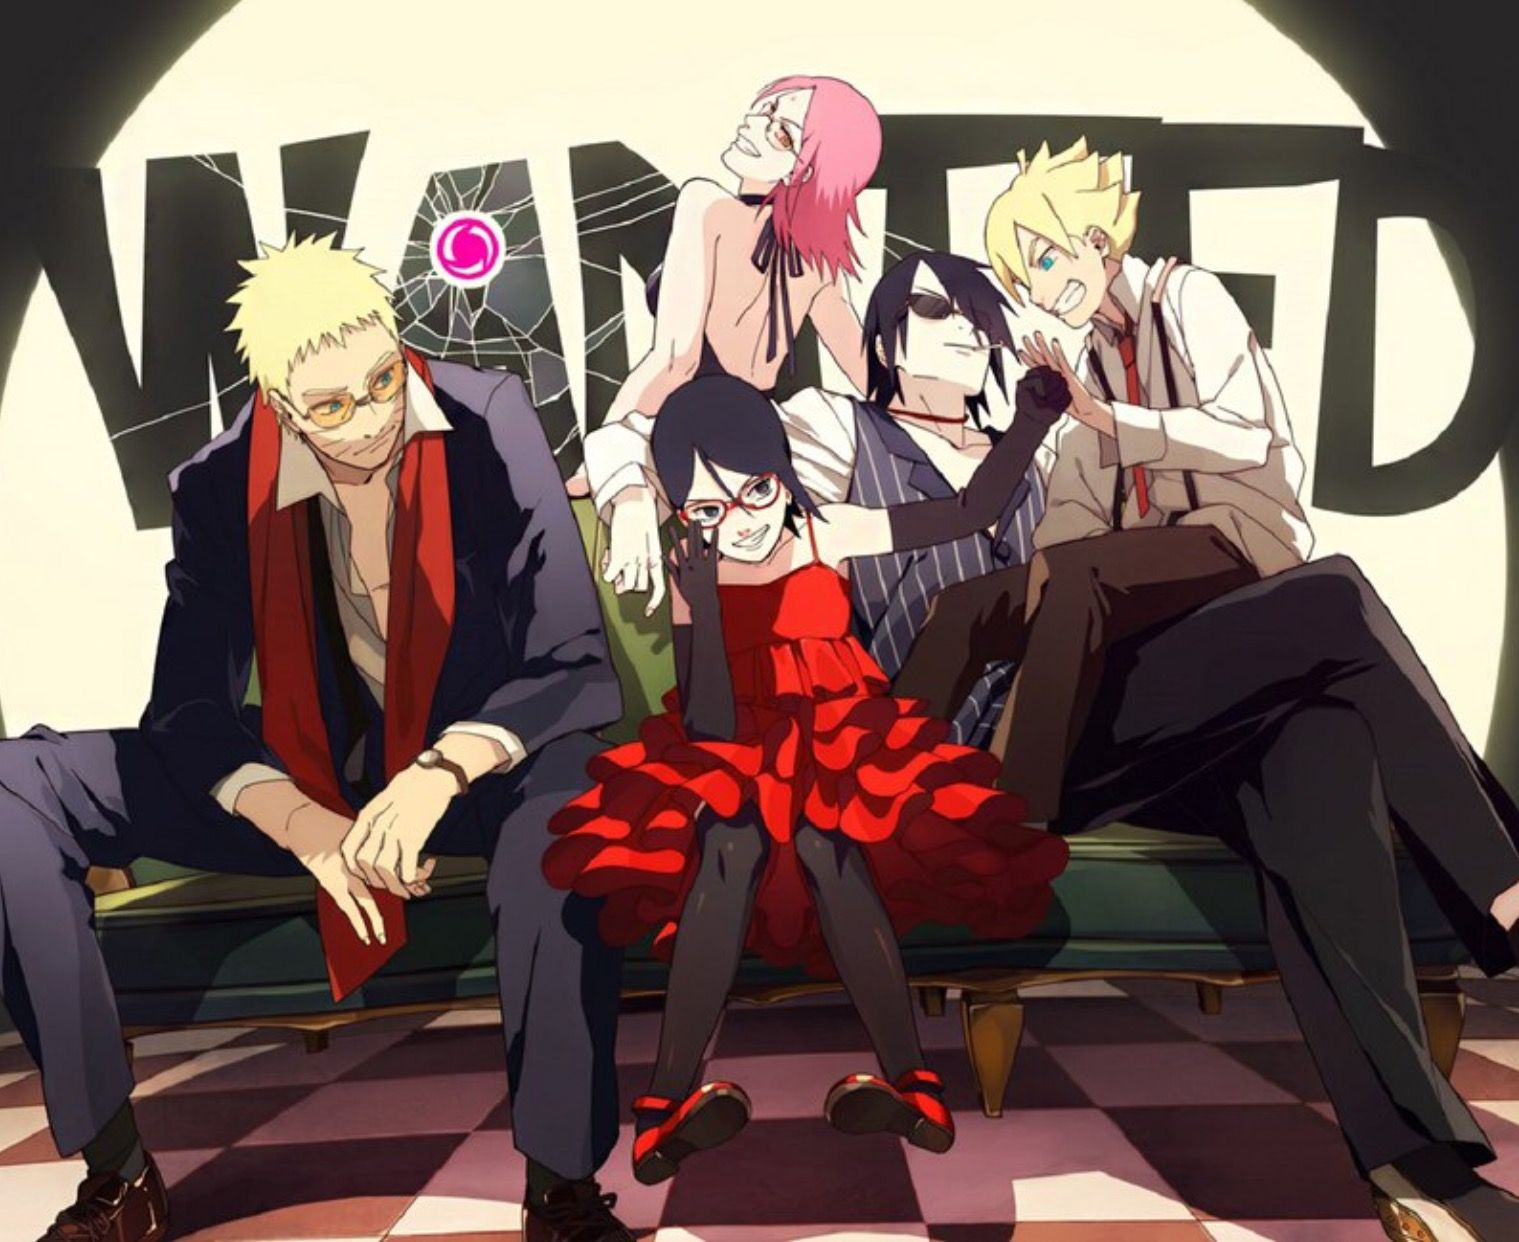 Good Wallpaper Naruto Gangster - e86236b569c39936b4faf23a2ea5564e  Graphic_371956.jpg